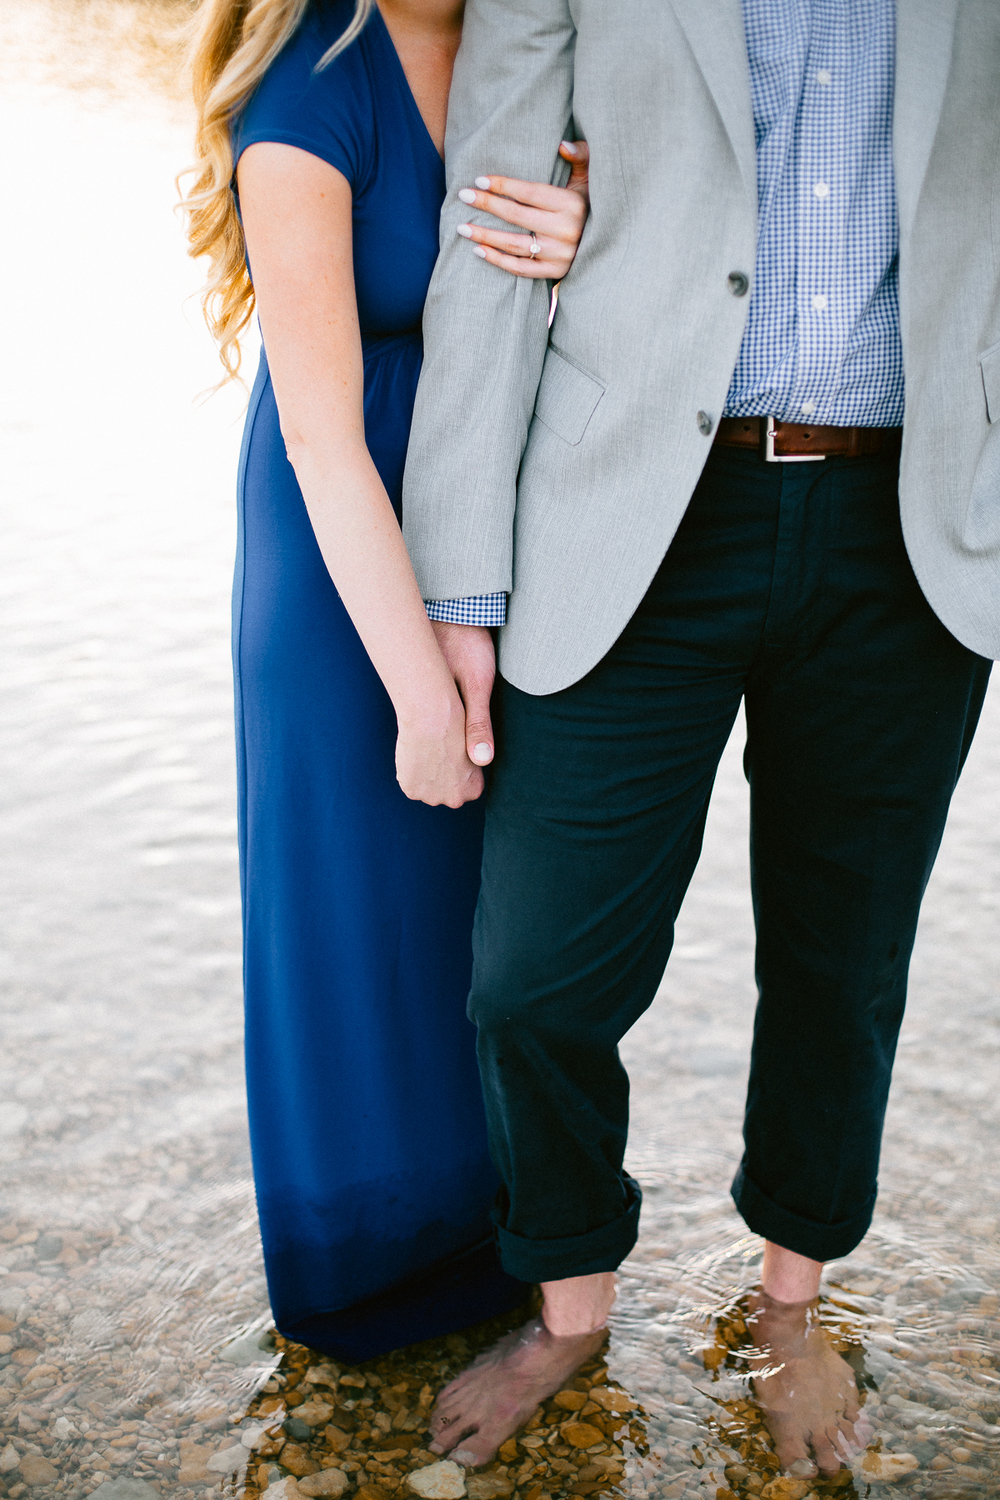 sharrock_engagements-1391.jpg